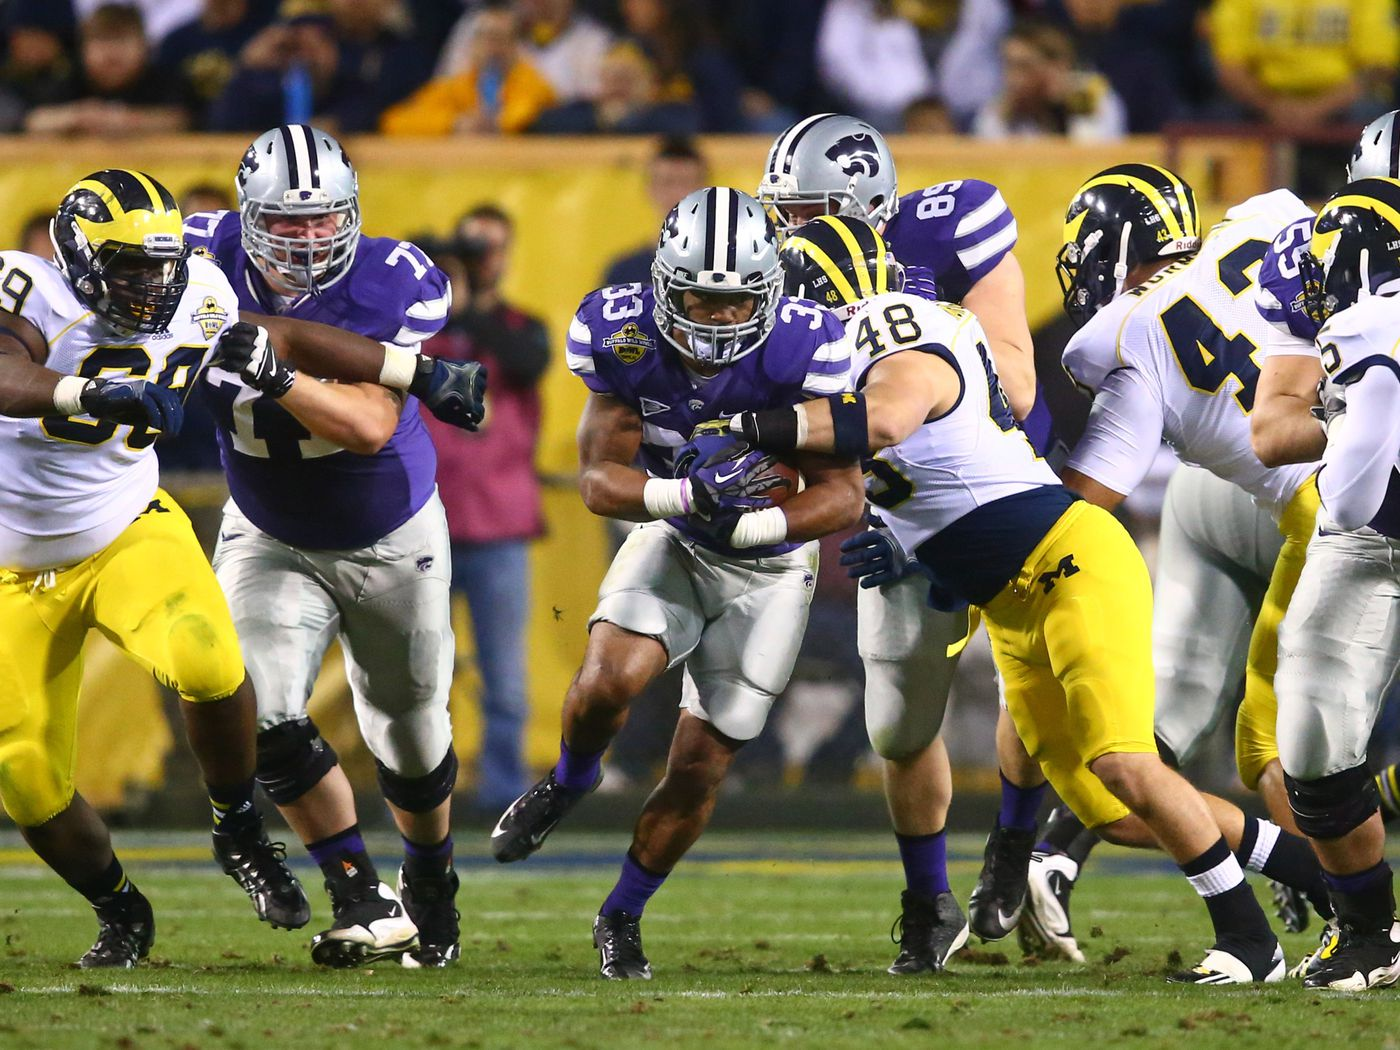 Inside The Playbook Over Under Michigan S 4 3 Defense Maize N Brew